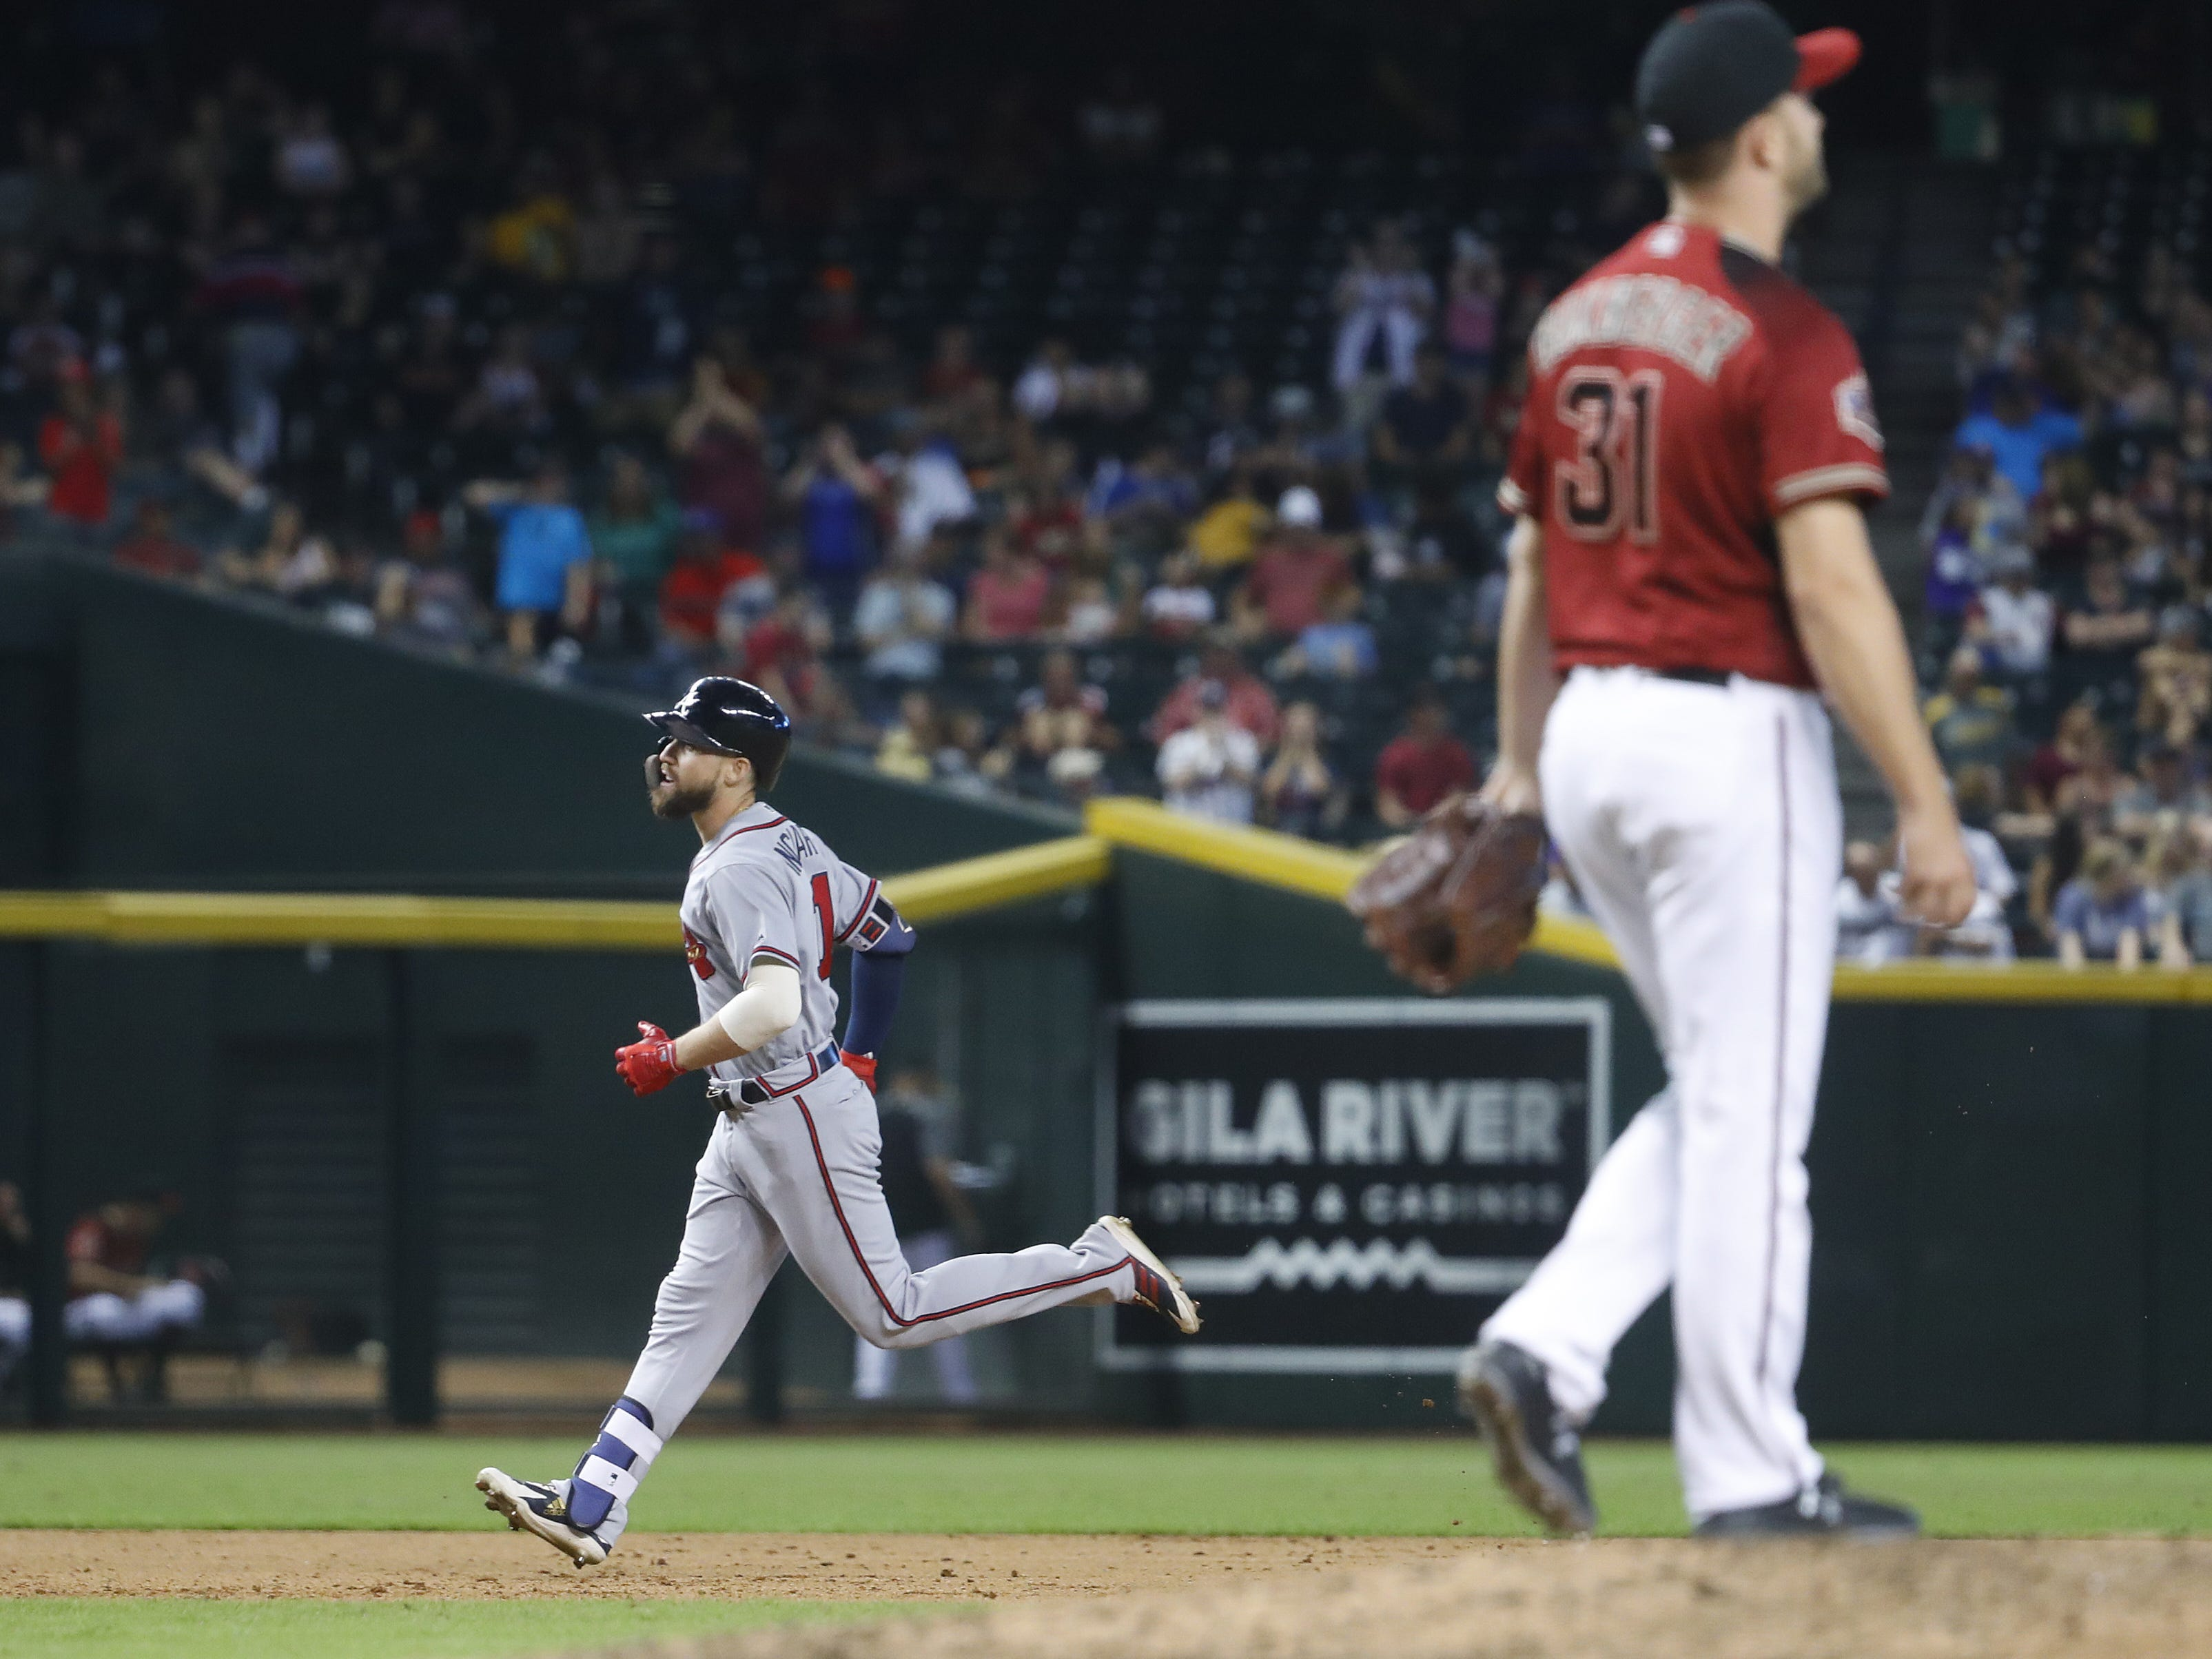 Diamondbacks closer Brad Boxberger reacts giving up a three-run home run to Braves Ender Inciarte (11) during the ninth inning at Chase Field in Phoenix, Ariz. on Sept. 9, 2018.